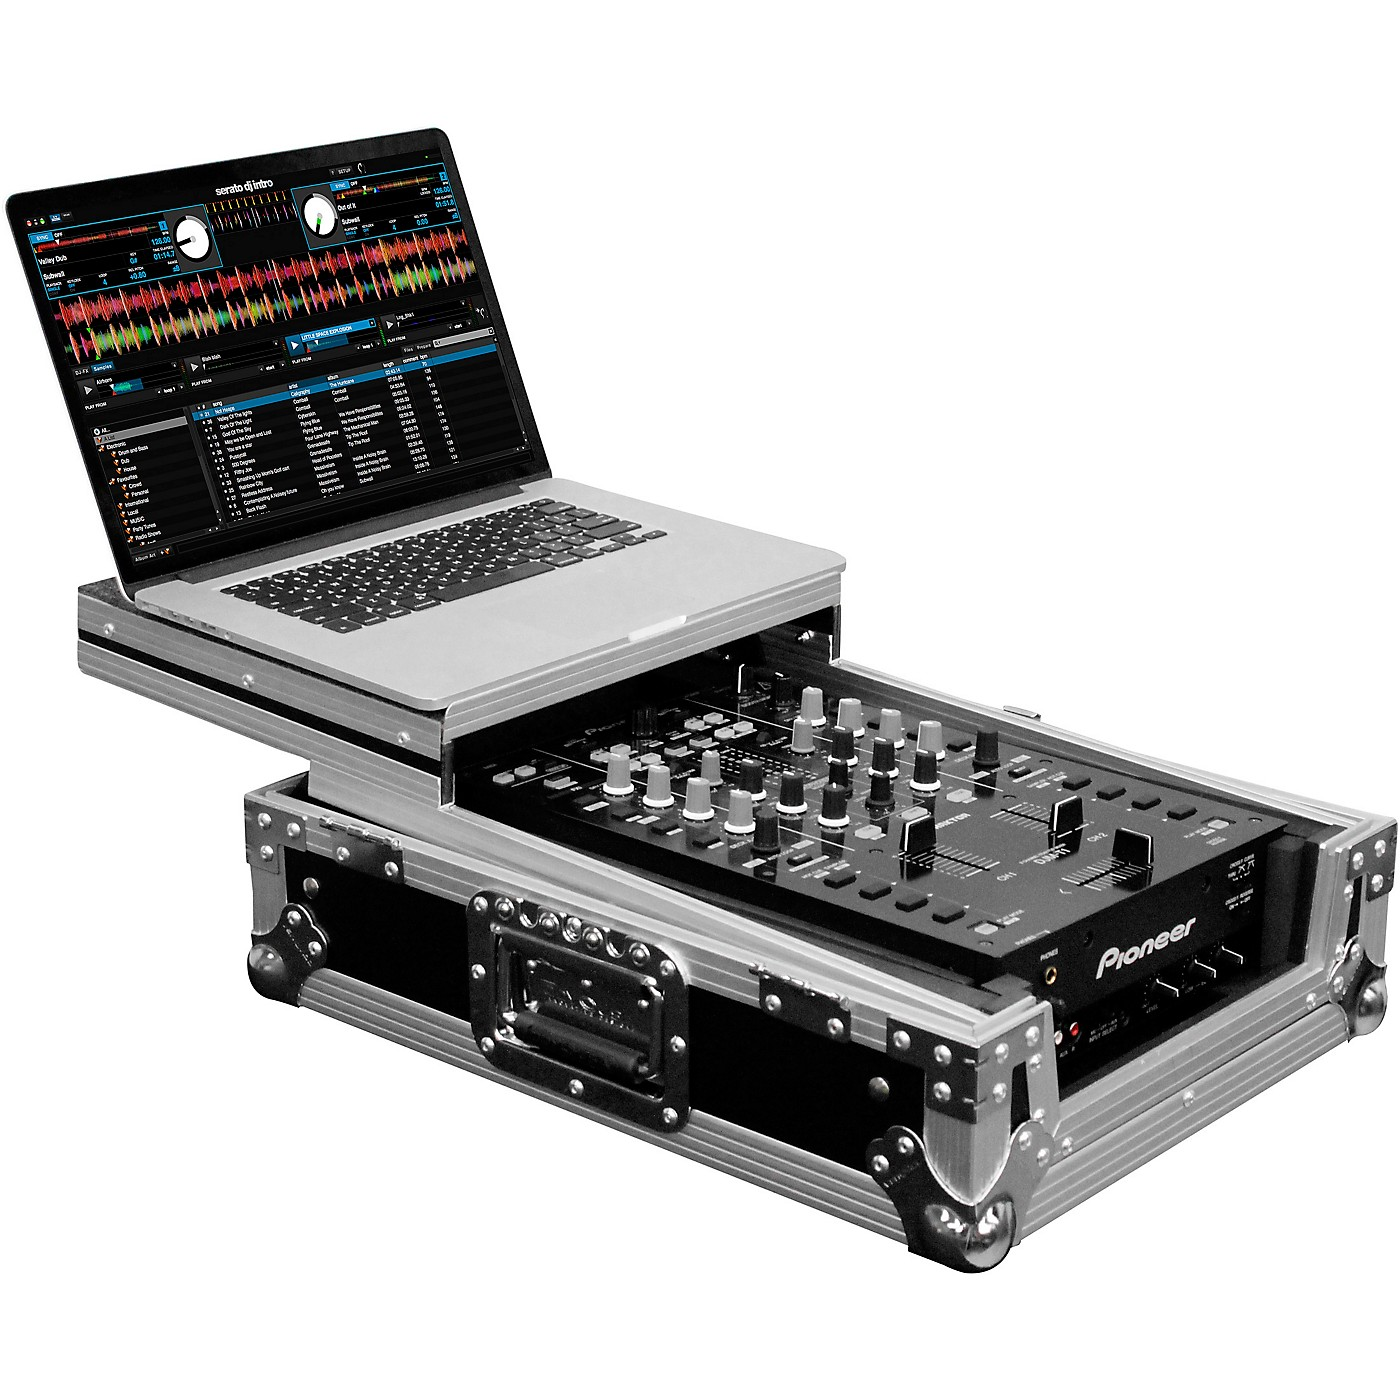 Odyssey FZGS10MX1 Universal 10 in. Format DJ Mixer Case With Glide Platform thumbnail